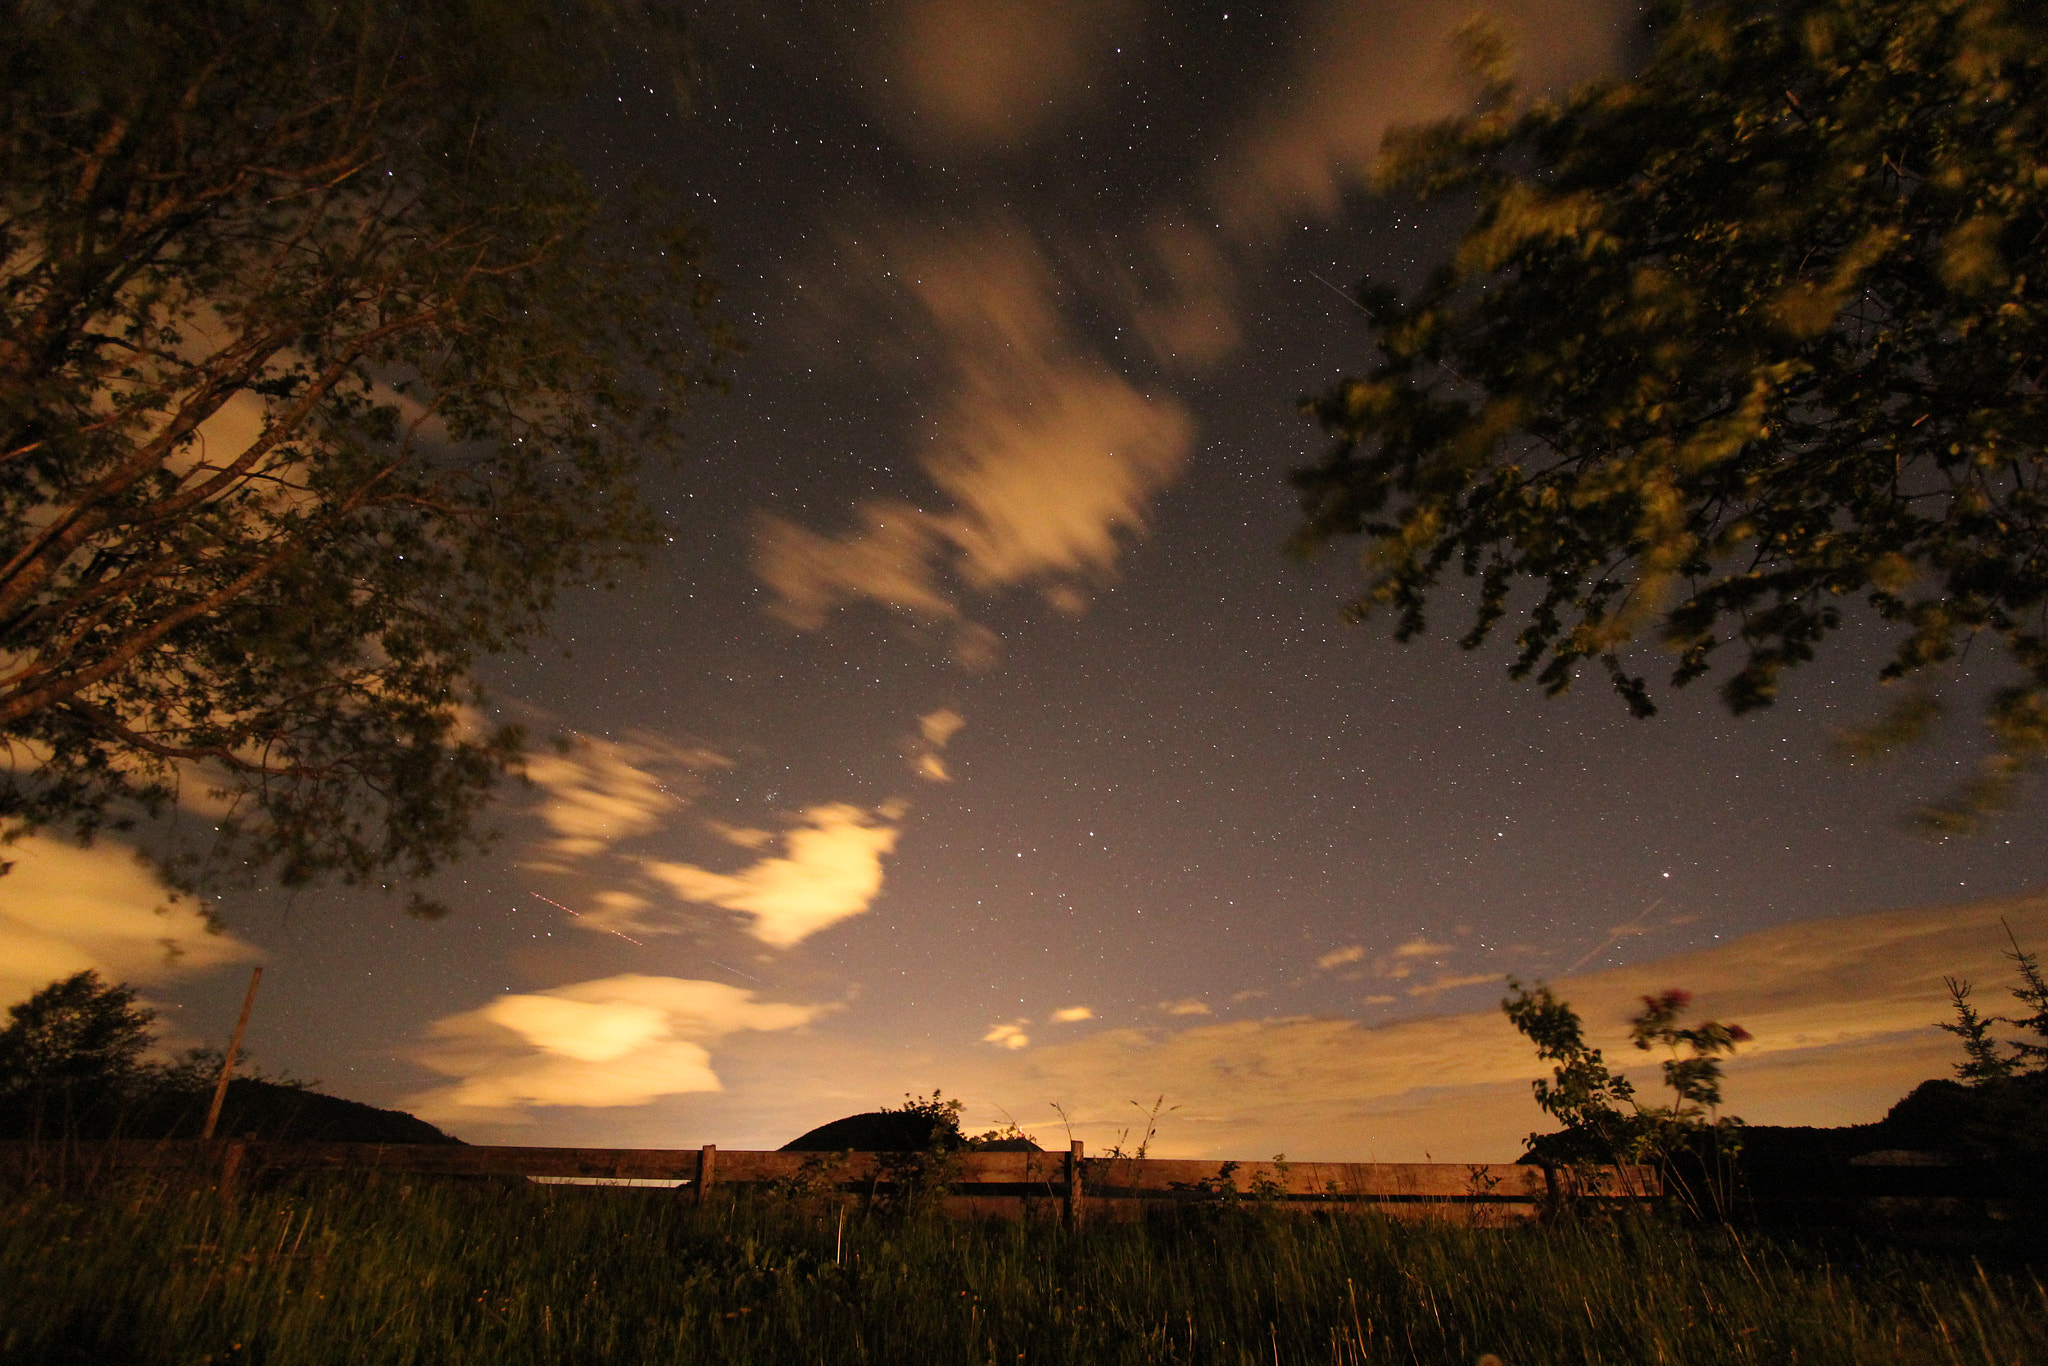 Photograph May_Night_2012 by Mex Brunner on 500px